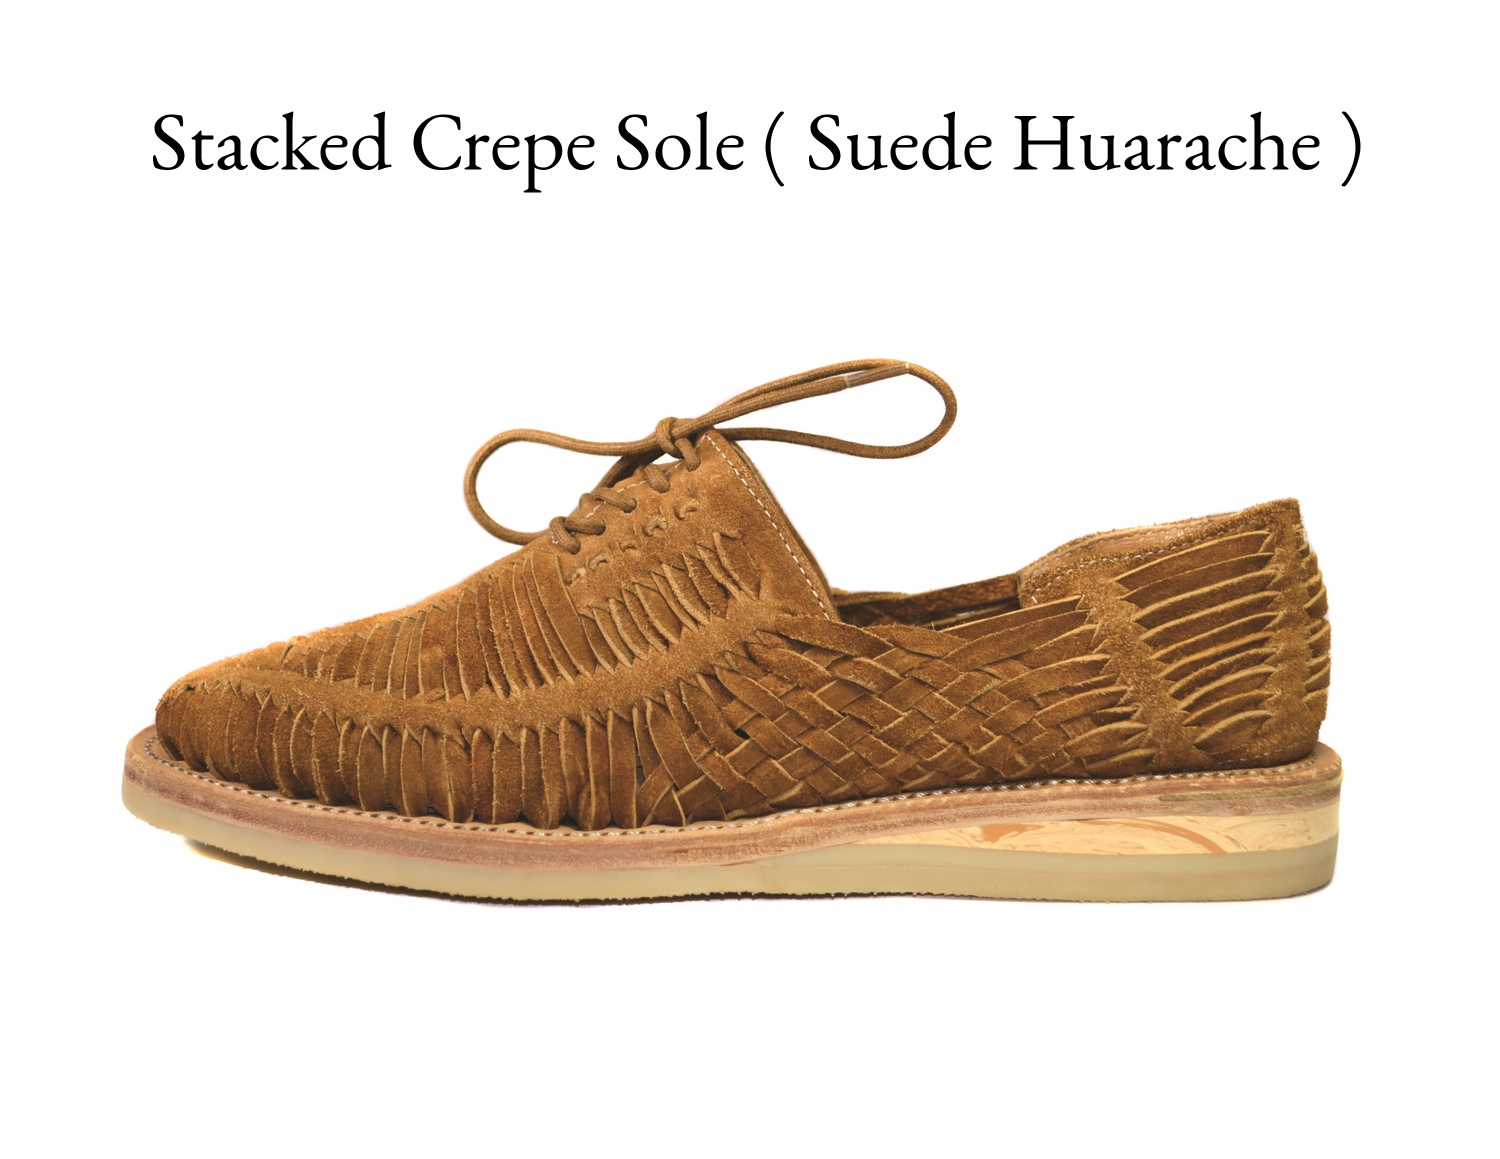 suede_inplace5.jpg